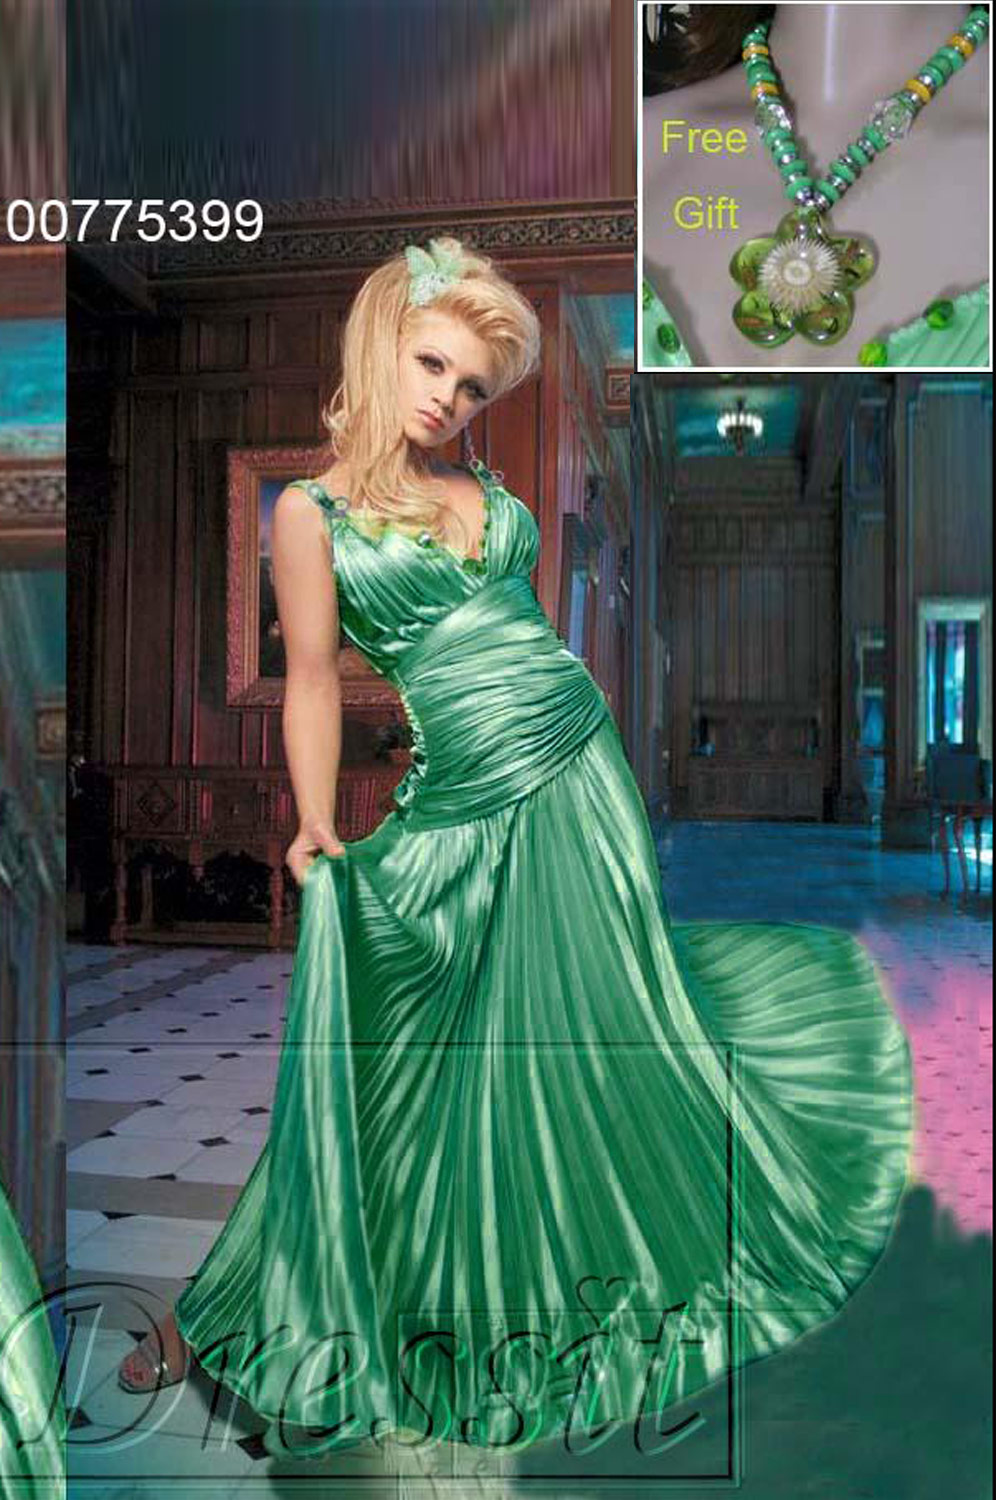 On sale !! eDressit green  Prom Gown Evening Dress (00775399)